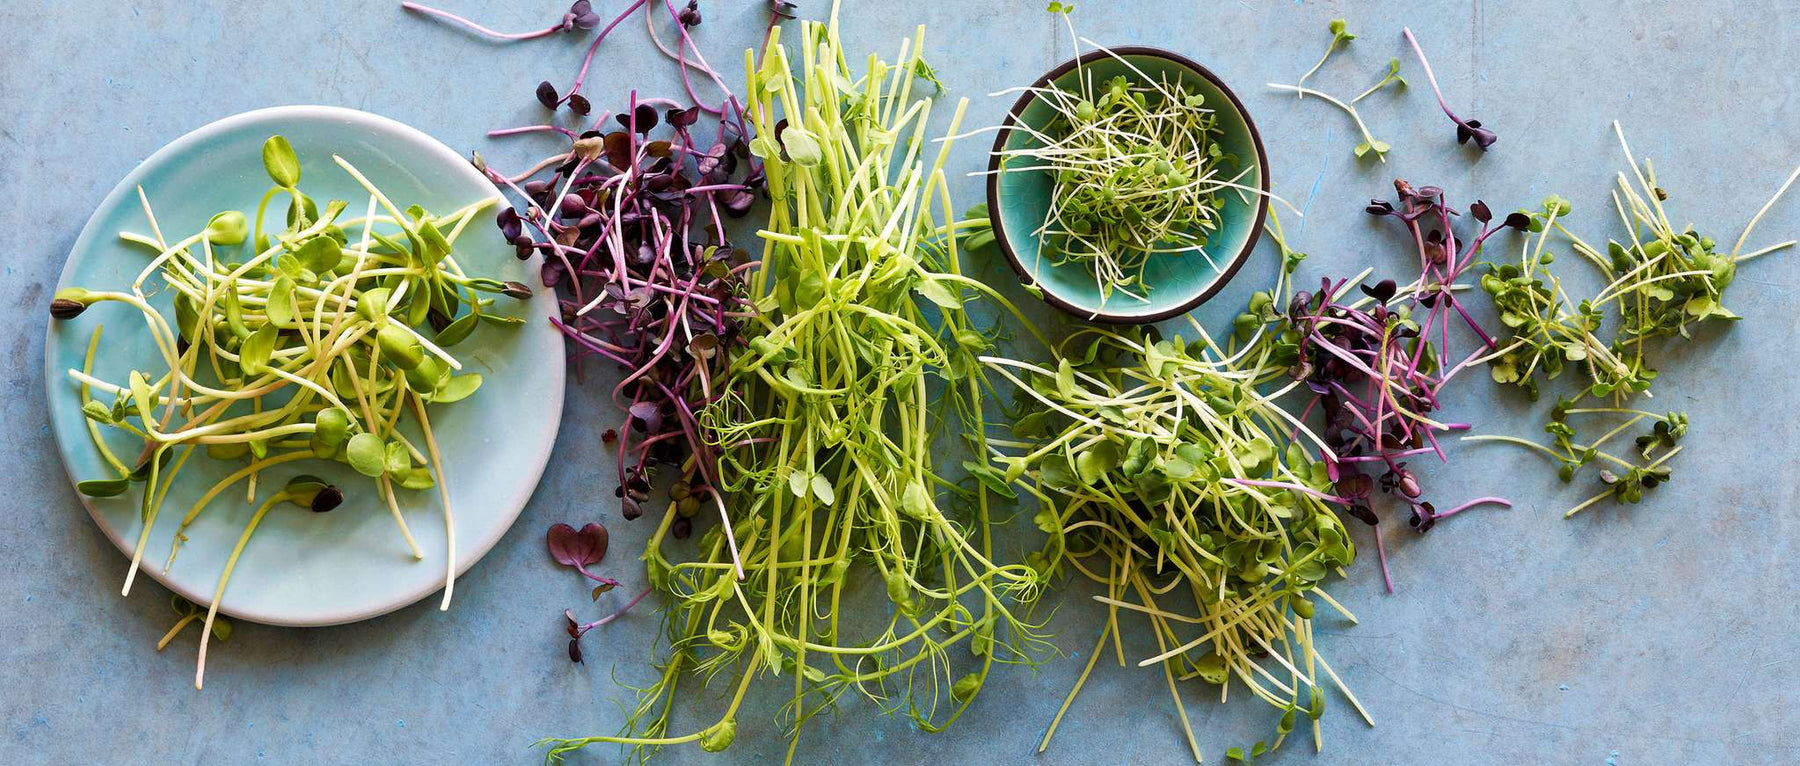 Health benefits of microgreens and how to grow your own at home